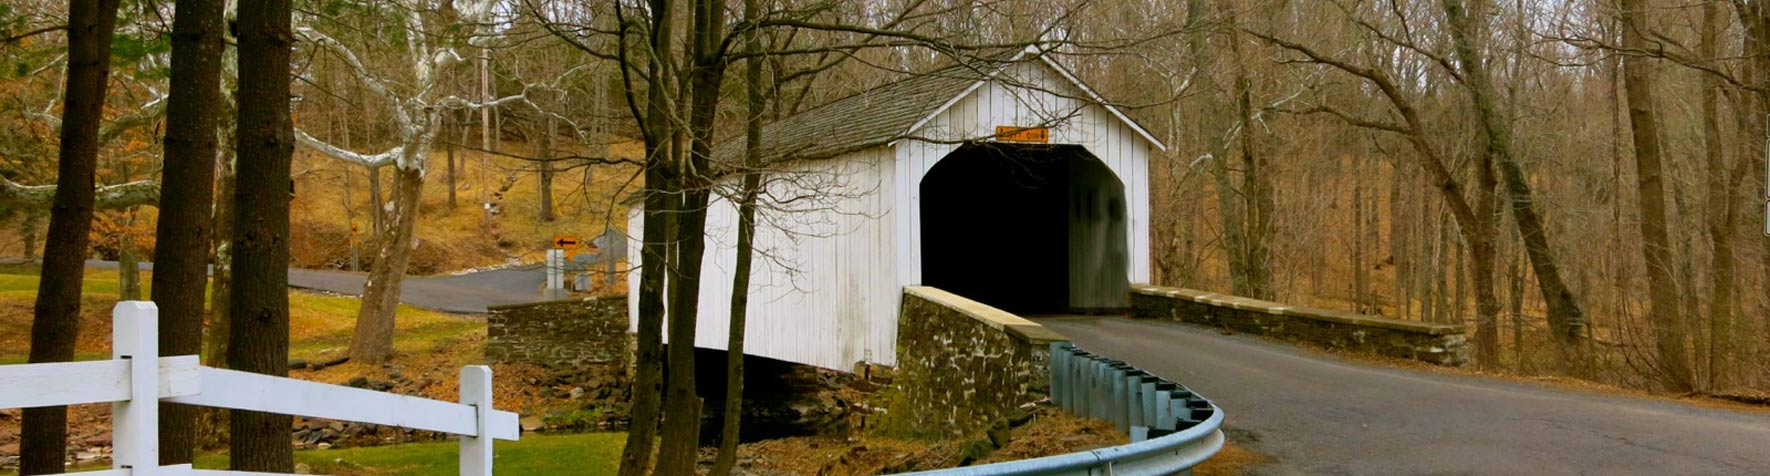 Picture of covered bridge in Bucks County